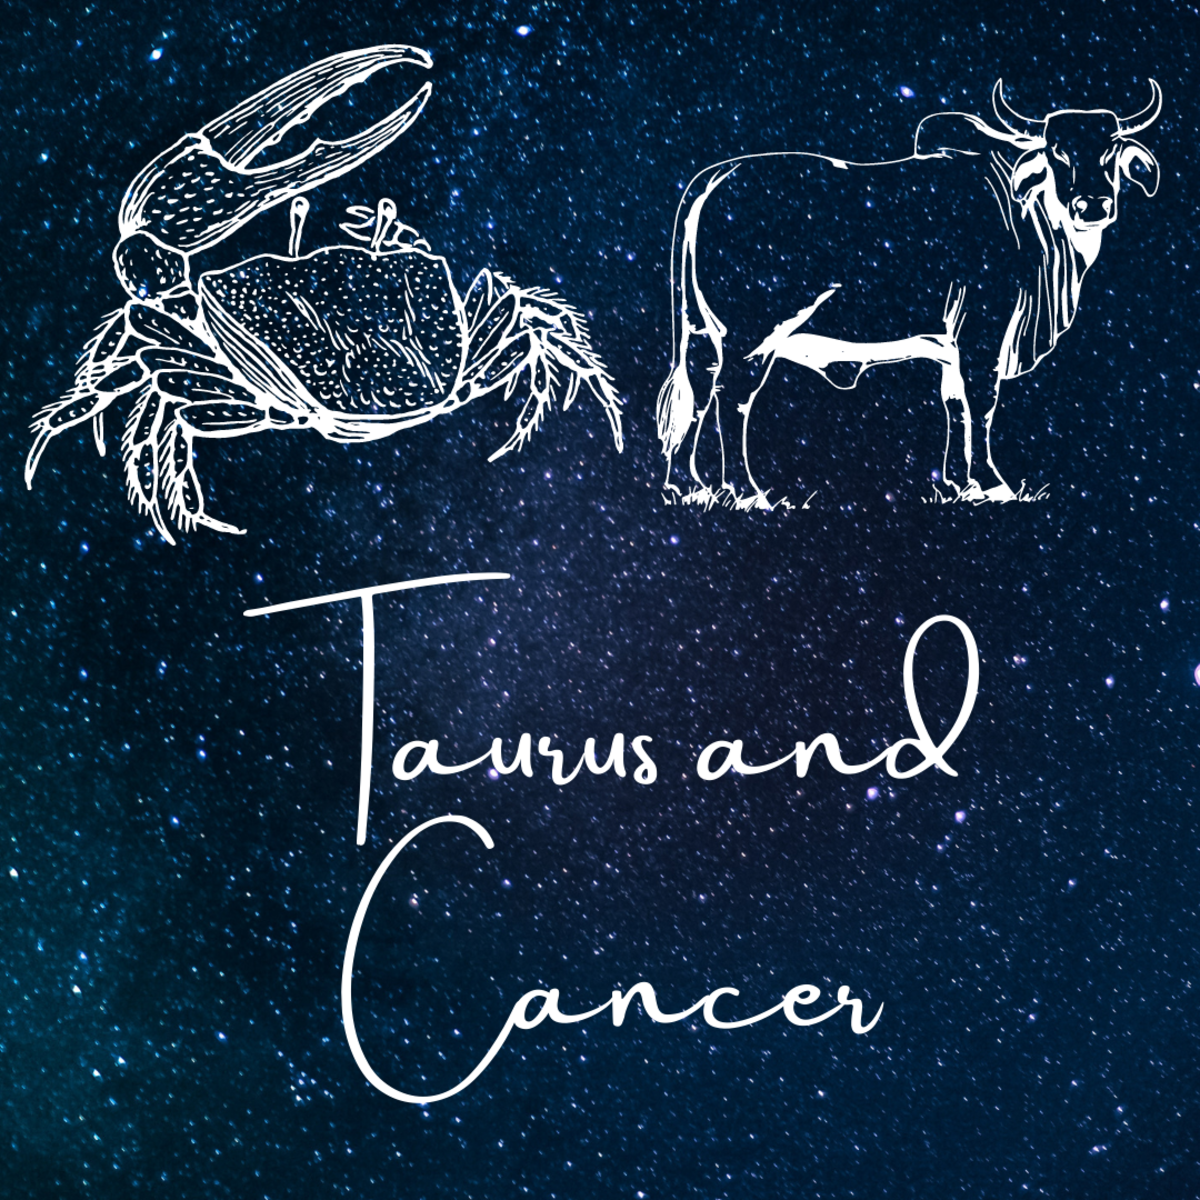 Do Taurus and Cancer make a good pair? Do they fight, or are they generally compatible? Find out here!